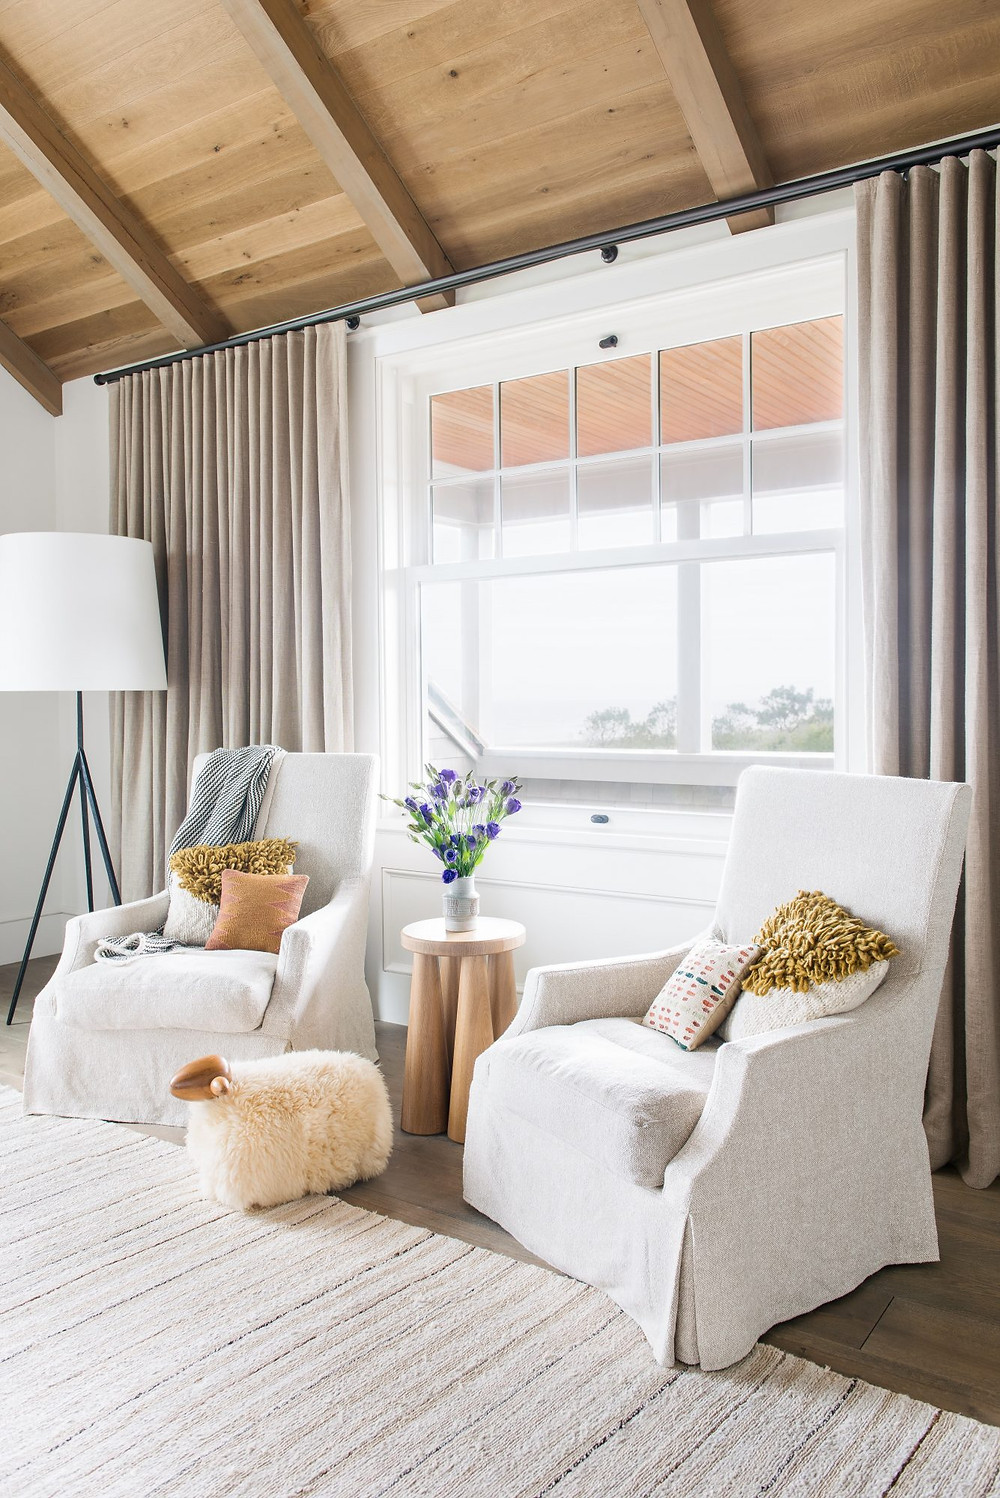 Charming bright and airy Modern Farmhouse. Natural Rug, Timber Ceiling and Shiplap Walls.